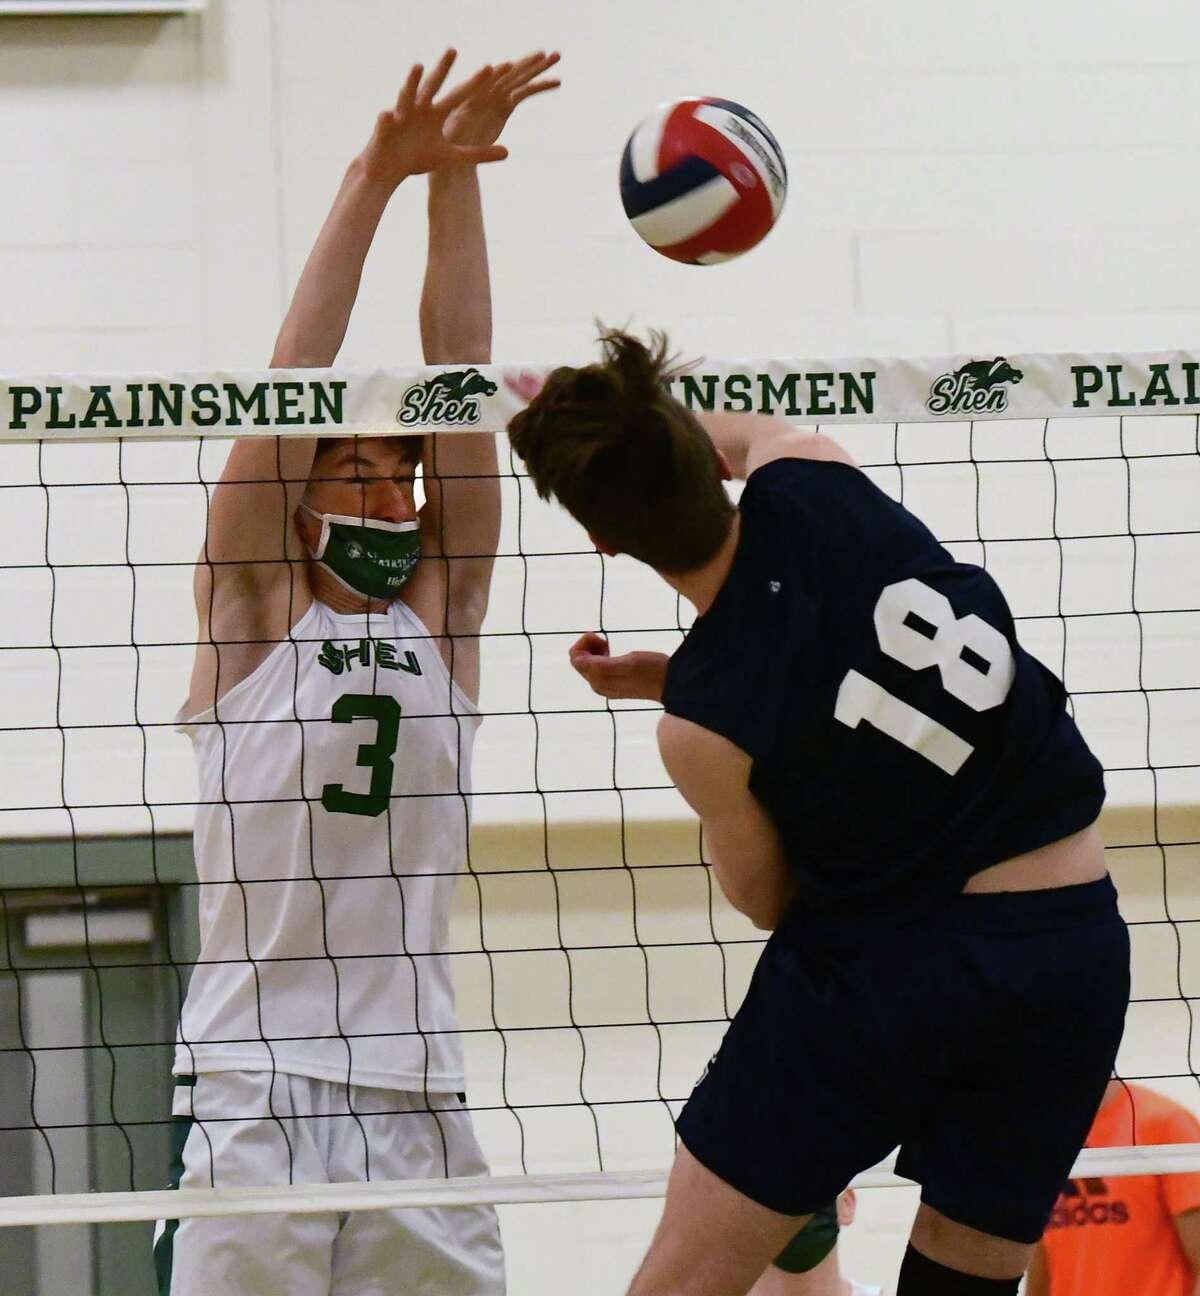 Shenendehowa's Jason Aubrey blocks a spike from Columbia's Gabe Tucker during a volleyball game on Wednesday, April 28, 2021 in Clifton Park, N.Y. (Lori Van Buren/Times Union)